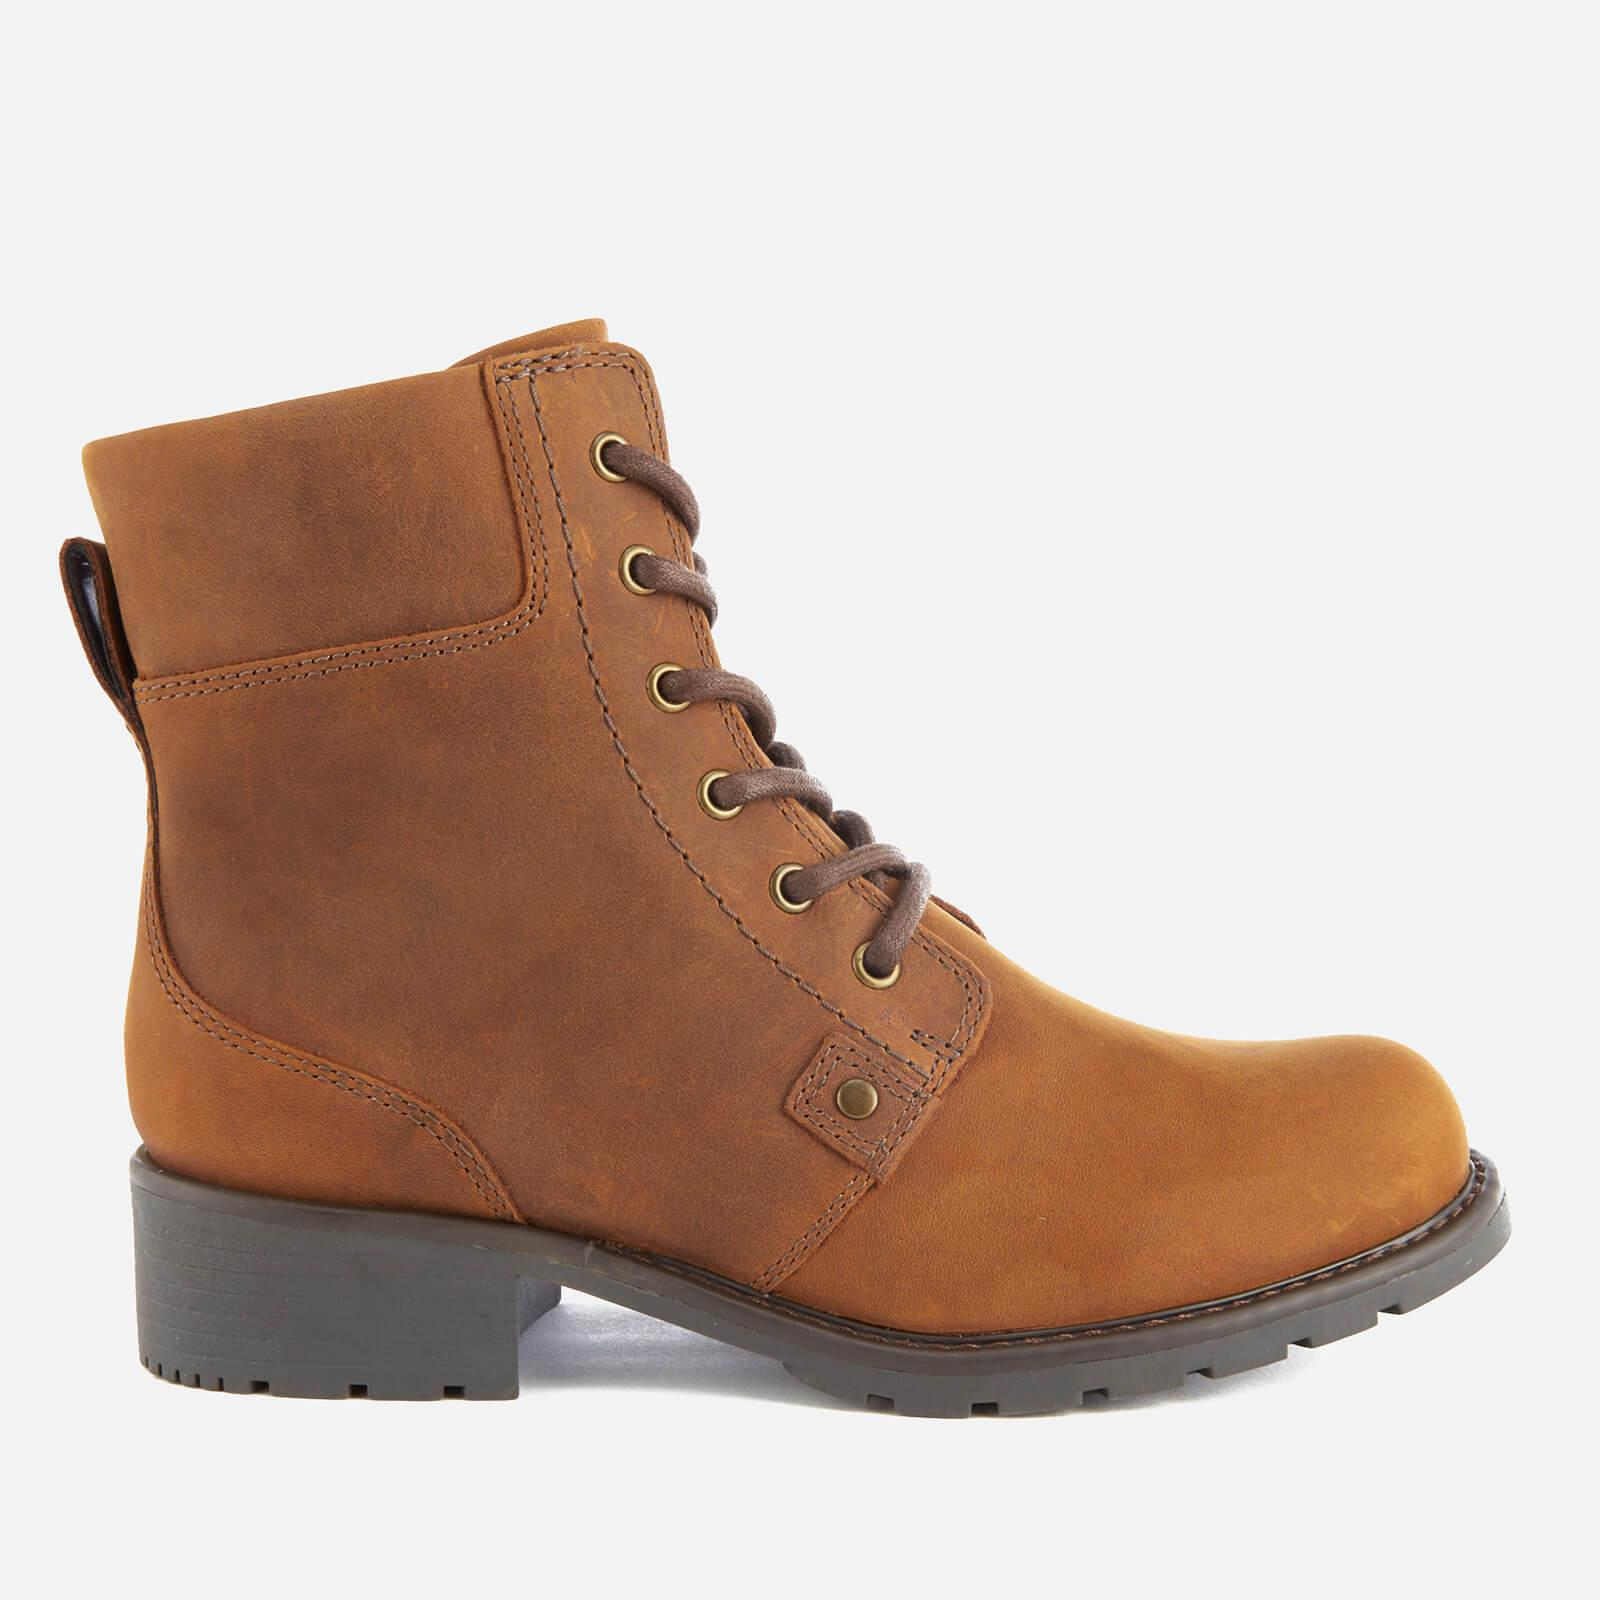 Clarks. Brown Women's Orinoco Spice Leather Lace Up Boots